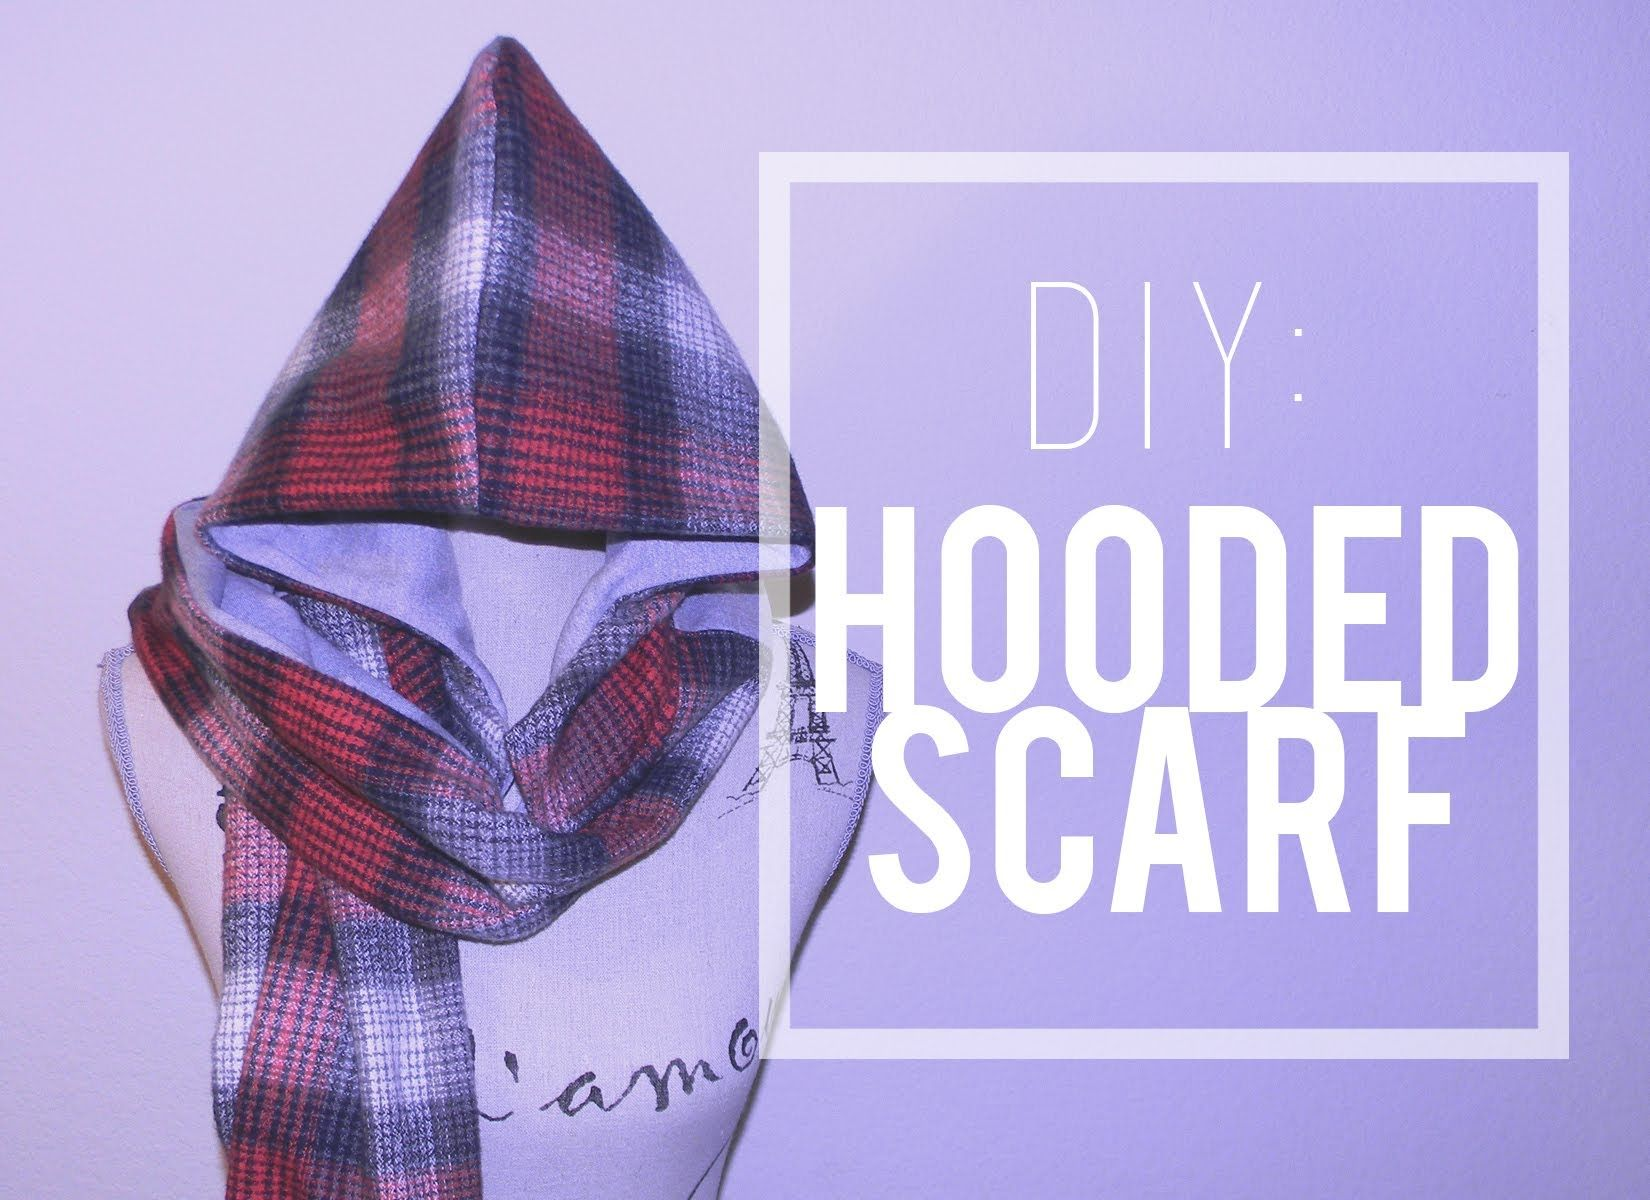 Fashion style How to hooded a wear scarf for lady